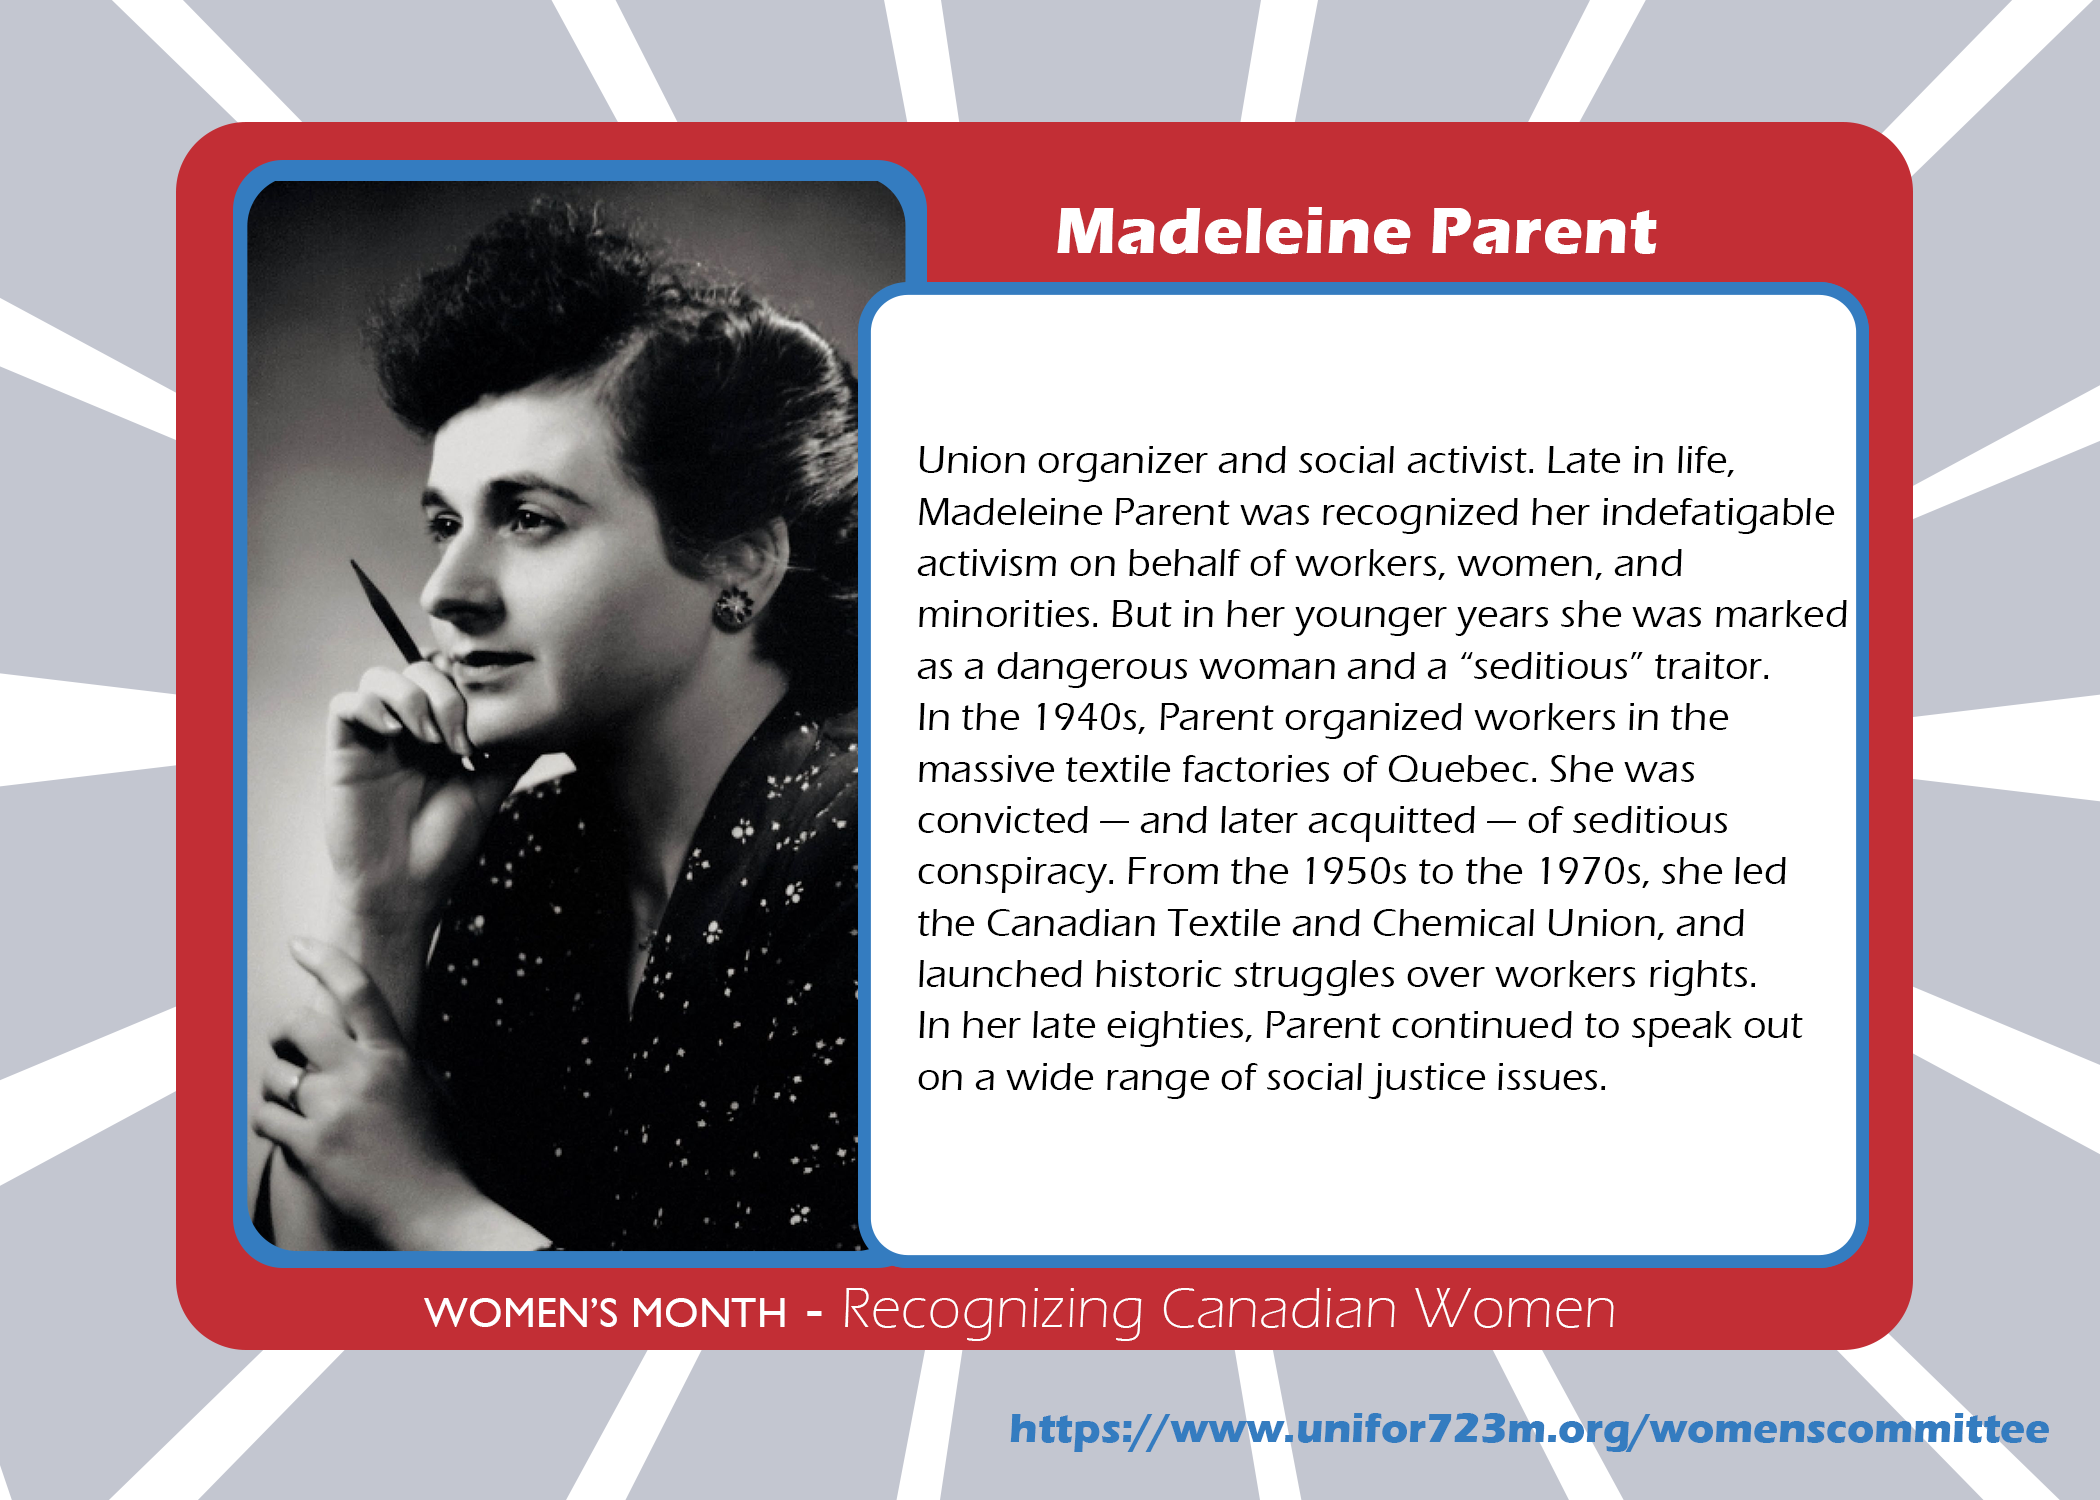 Madeline Parent